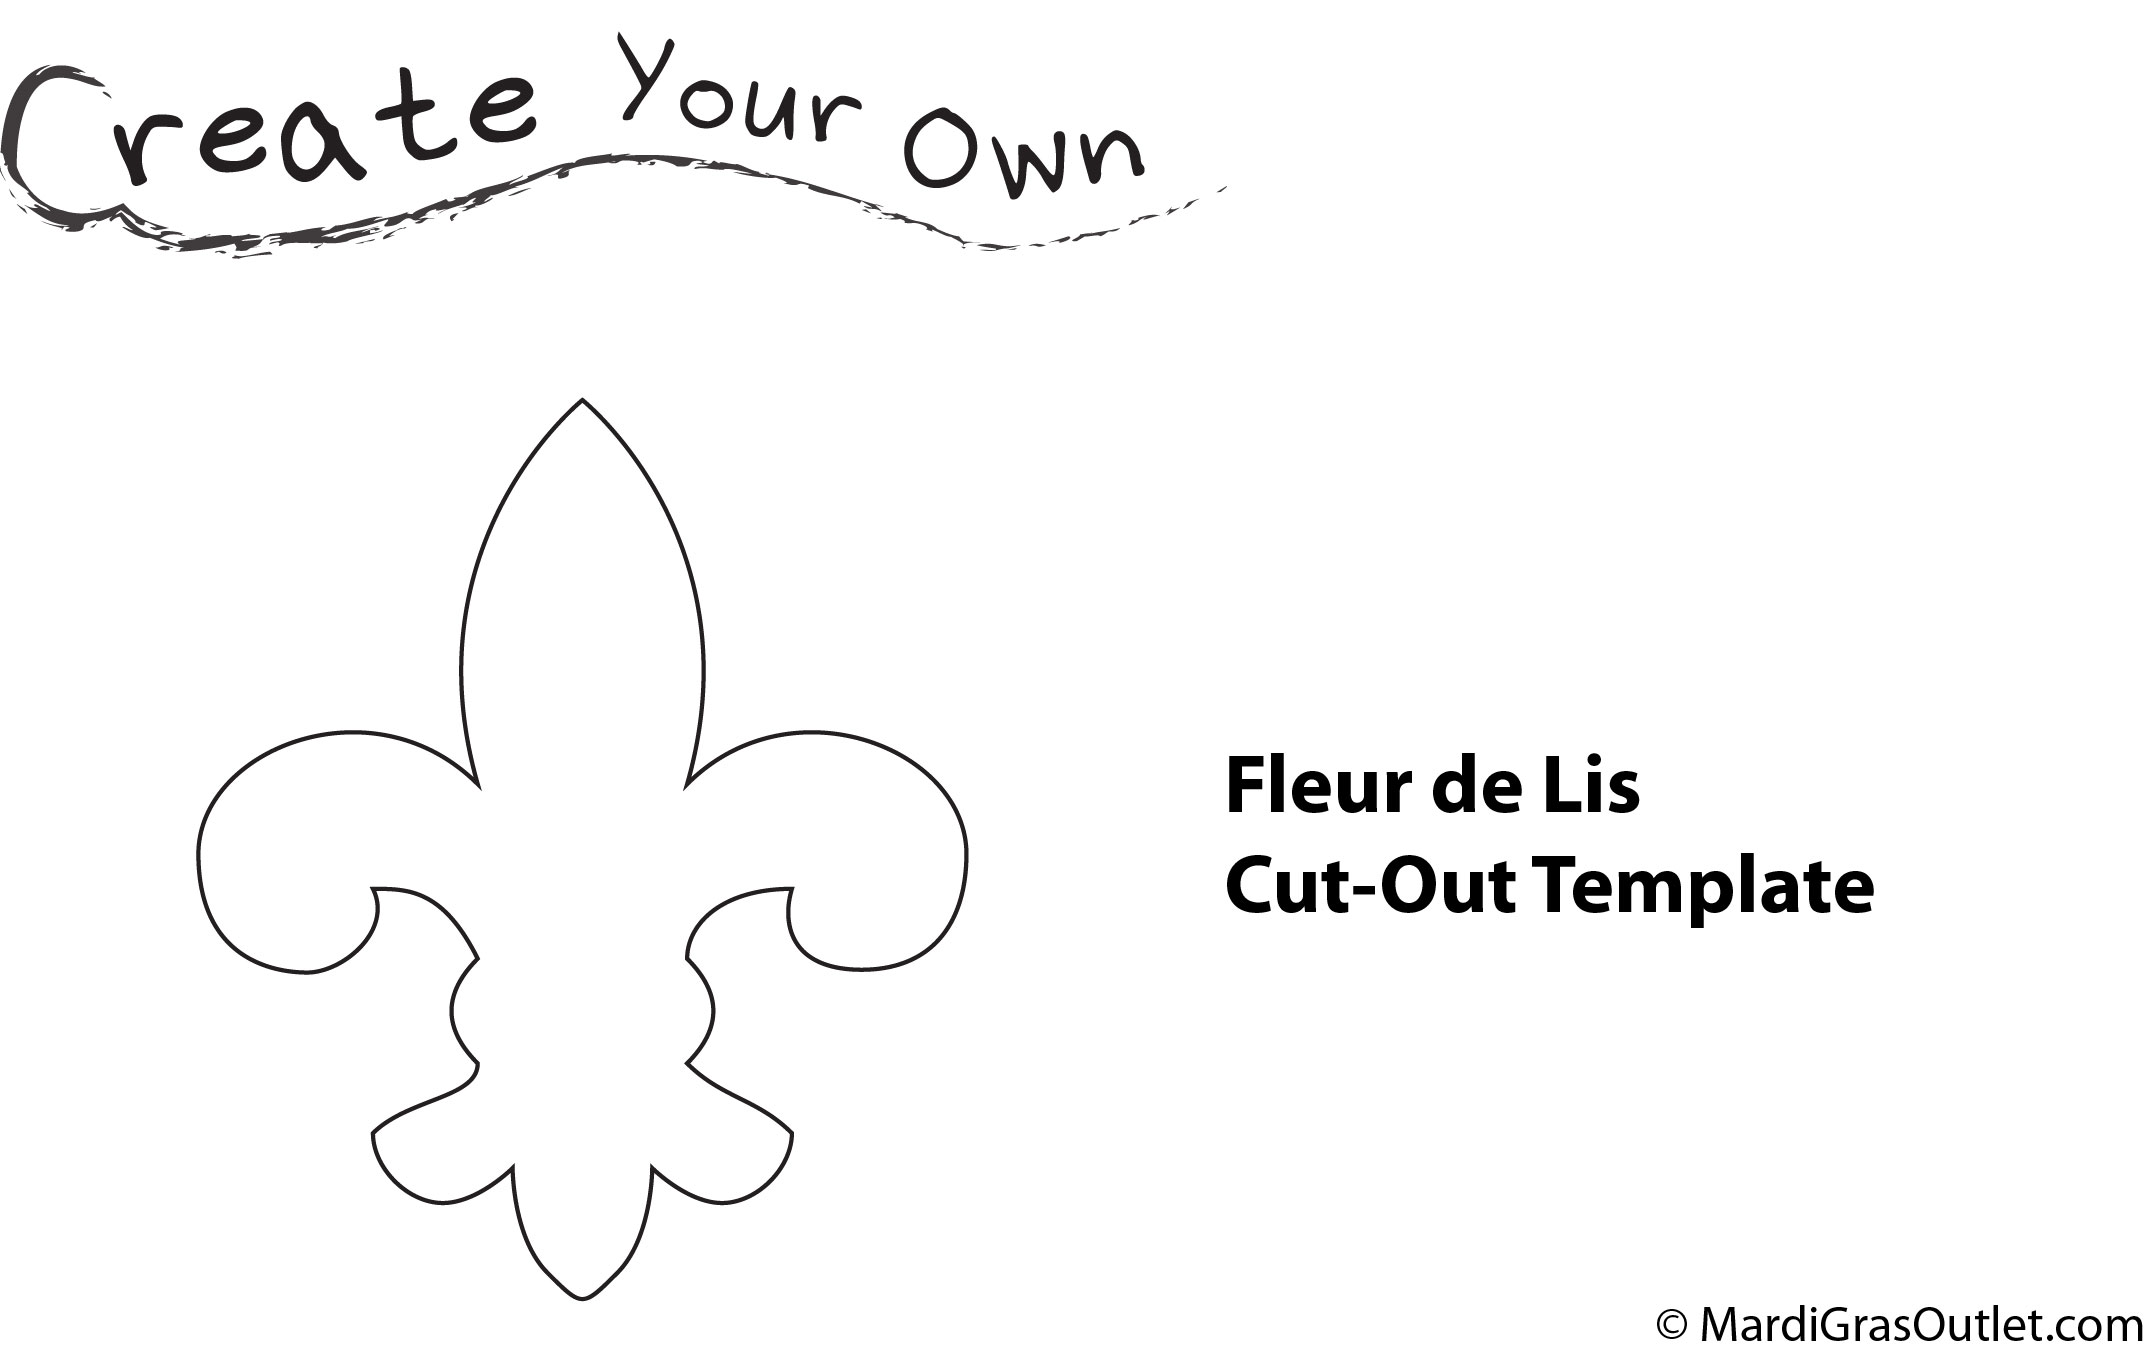 Fleur De Lis Gift Wrap Its A Simple But Elegant Way To Accent Gifts For Krewe Presents Mardi Gras Party Favors And More Cut Out Template Provided